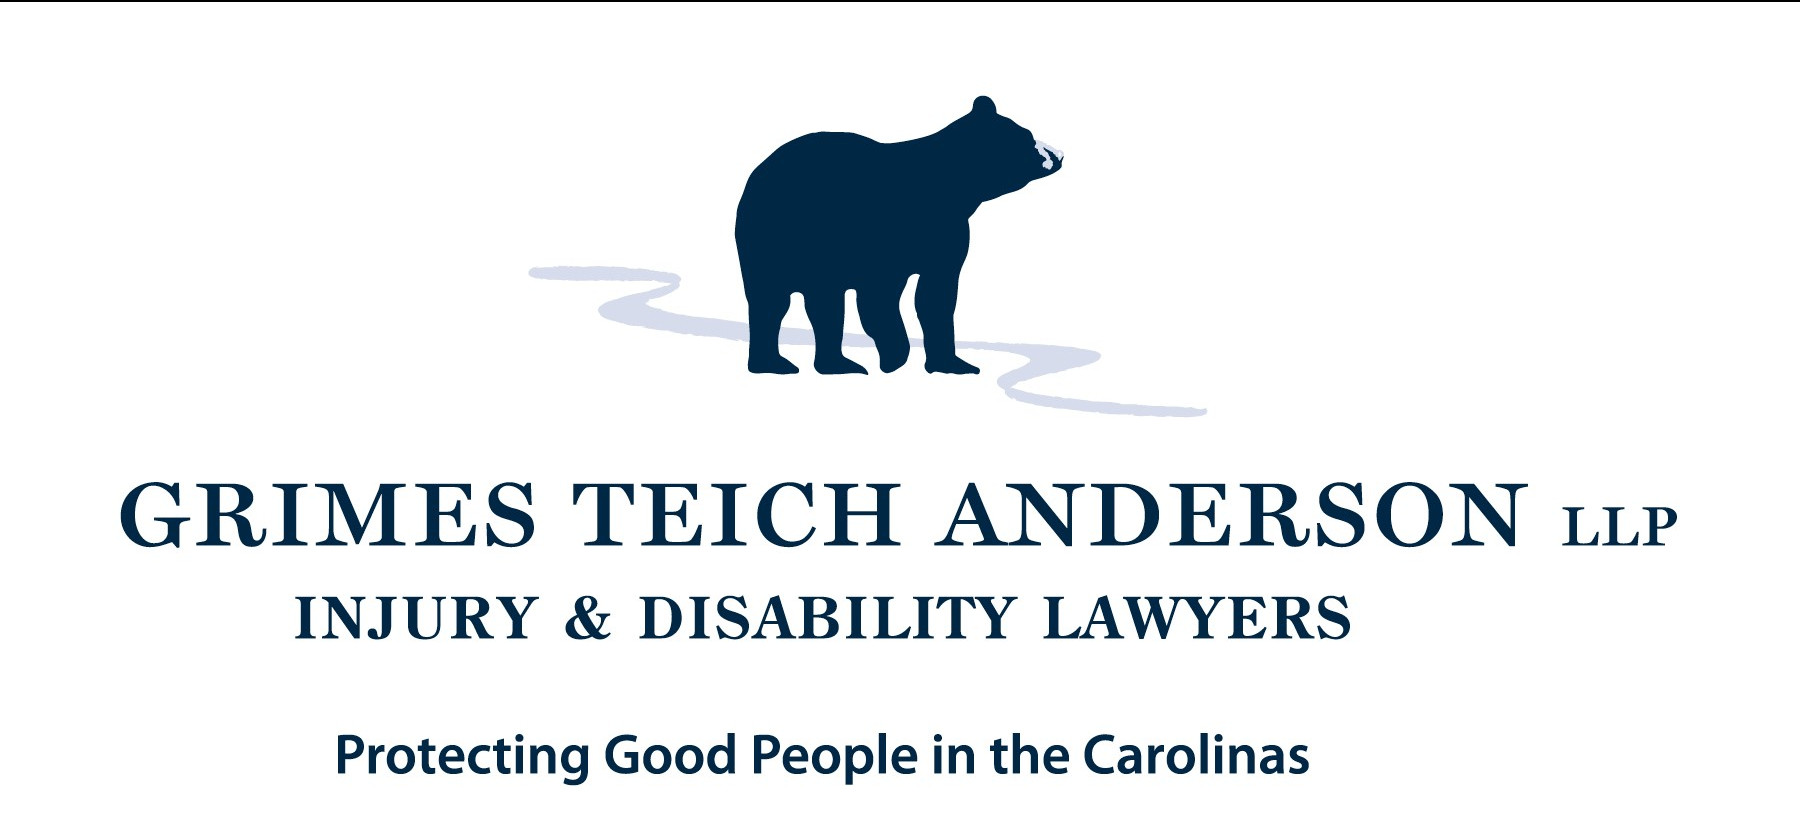 Grimes Teich Anderson Injury Lawyers